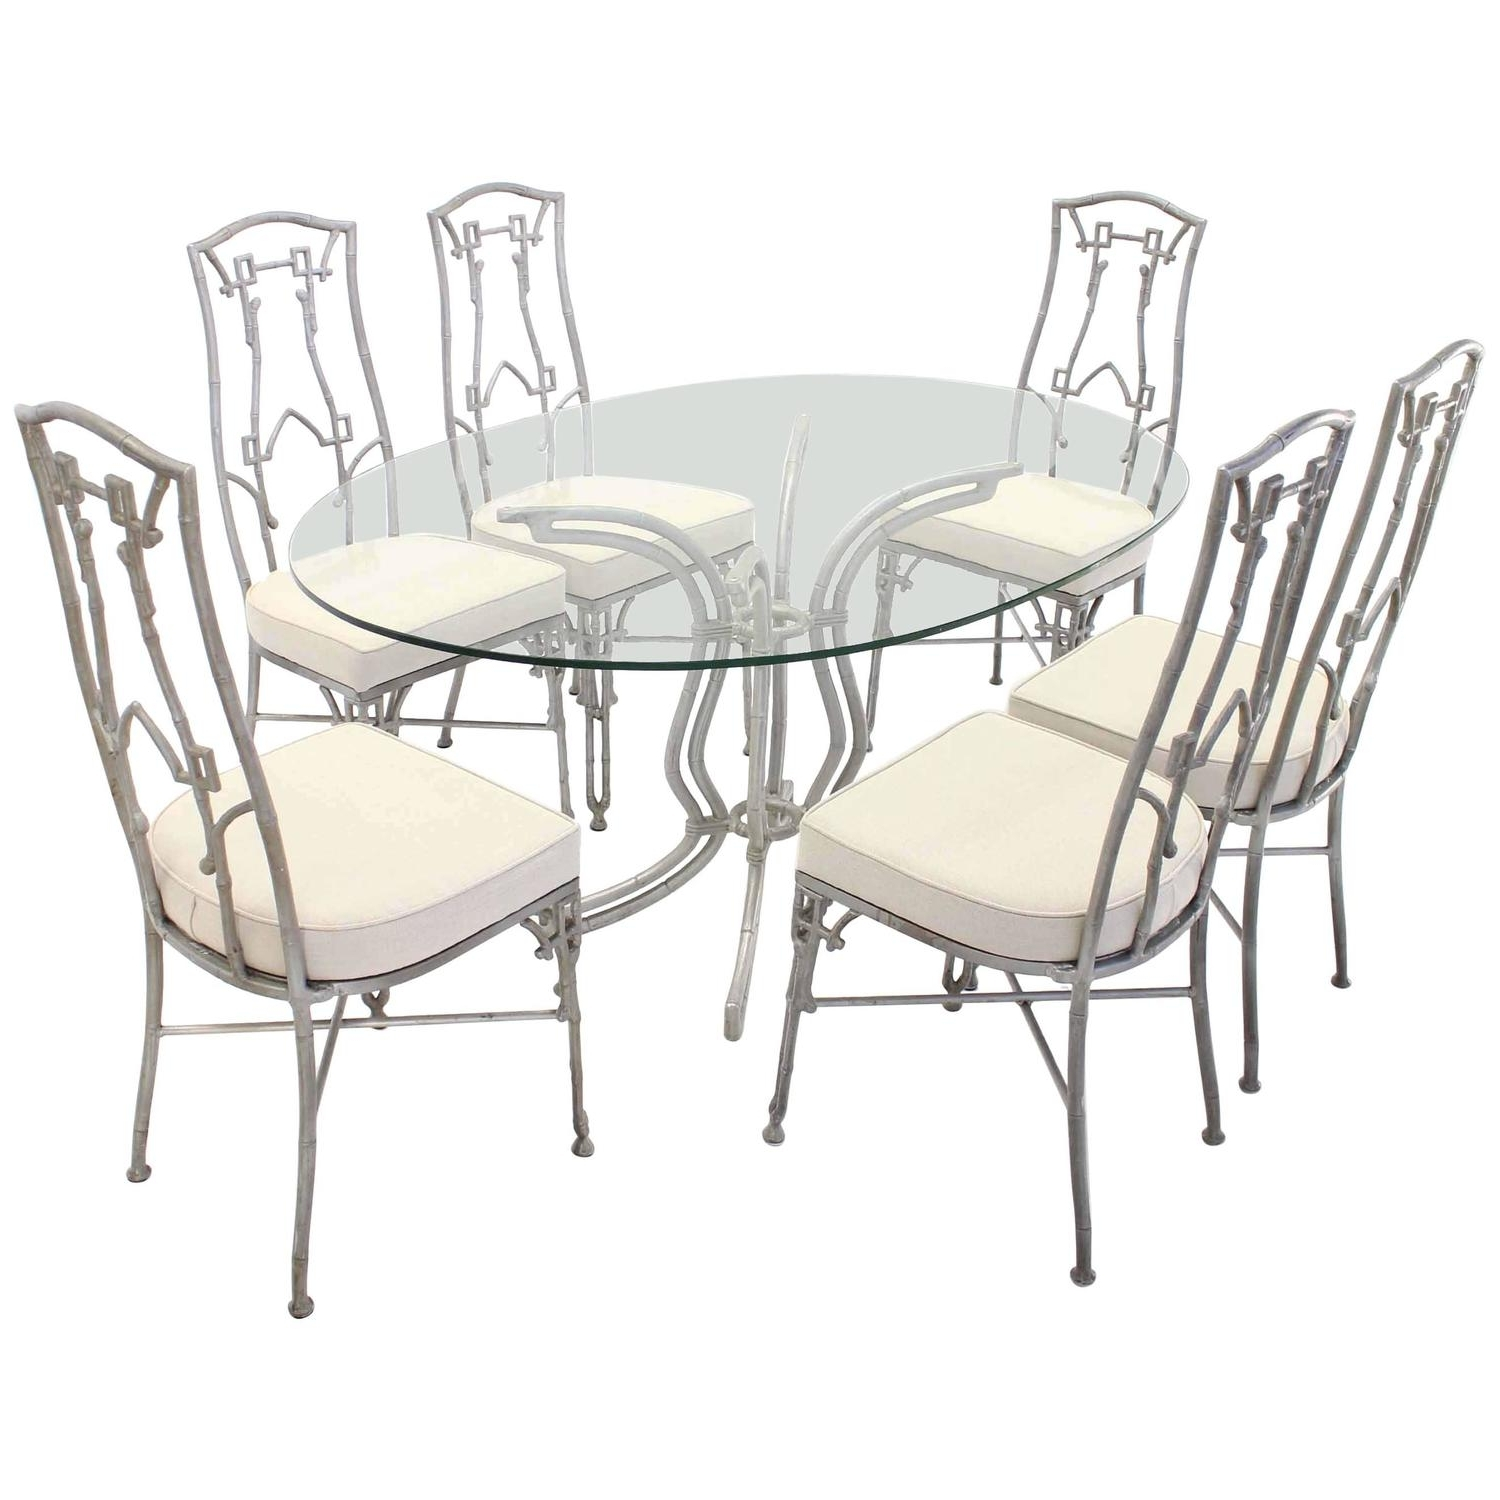 Cast Aluminum Faux Bamboo Mid Century Modern Six Chairs And Table Intended For Most Recently Released Dining Tables And Six Chairs (View 6 of 25)